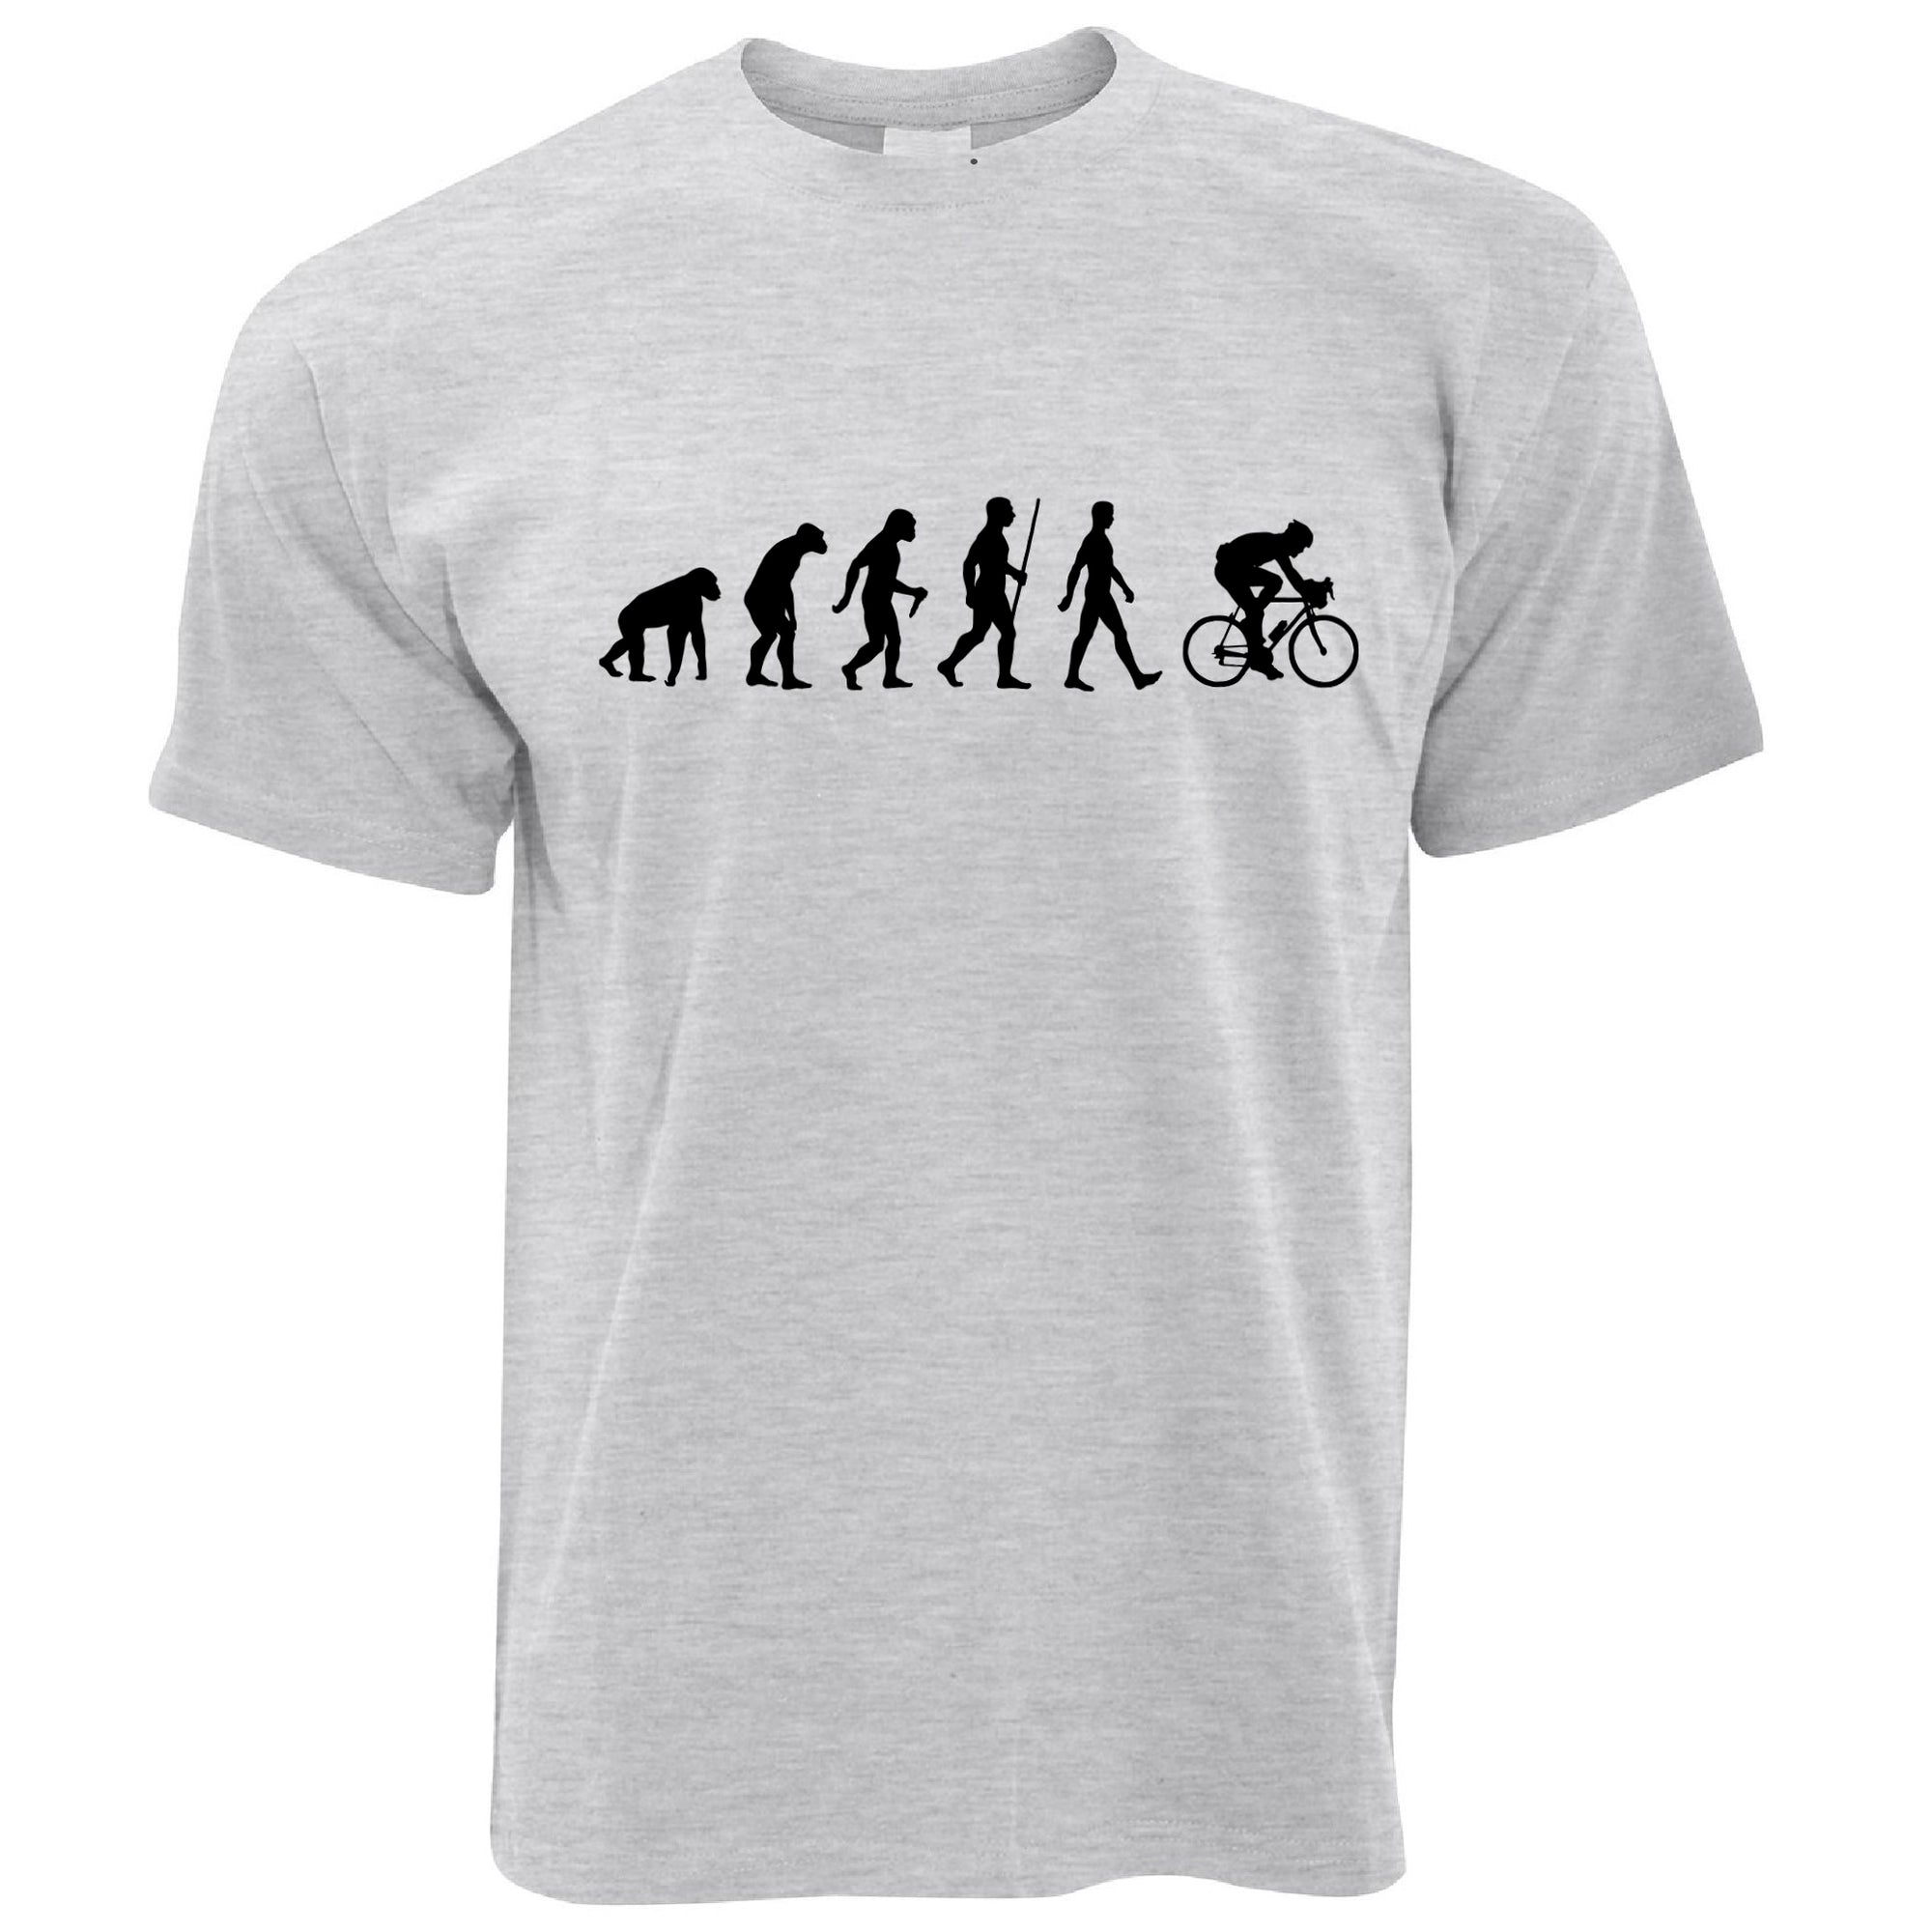 Mens Novelty T Shirt The Evolution of Cycling Tee